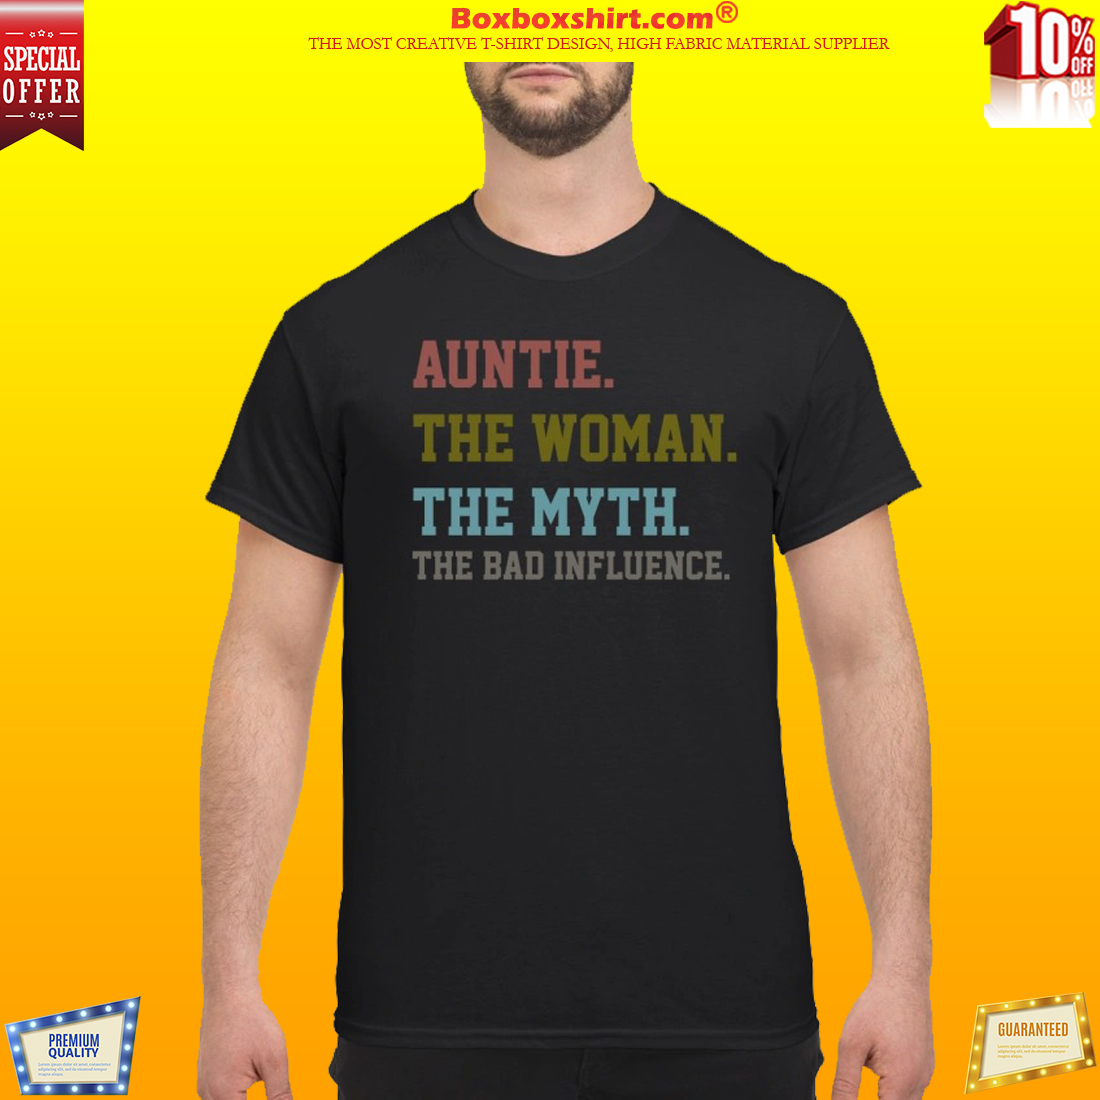 Auntie the woman the myth the bad influence classic shirt